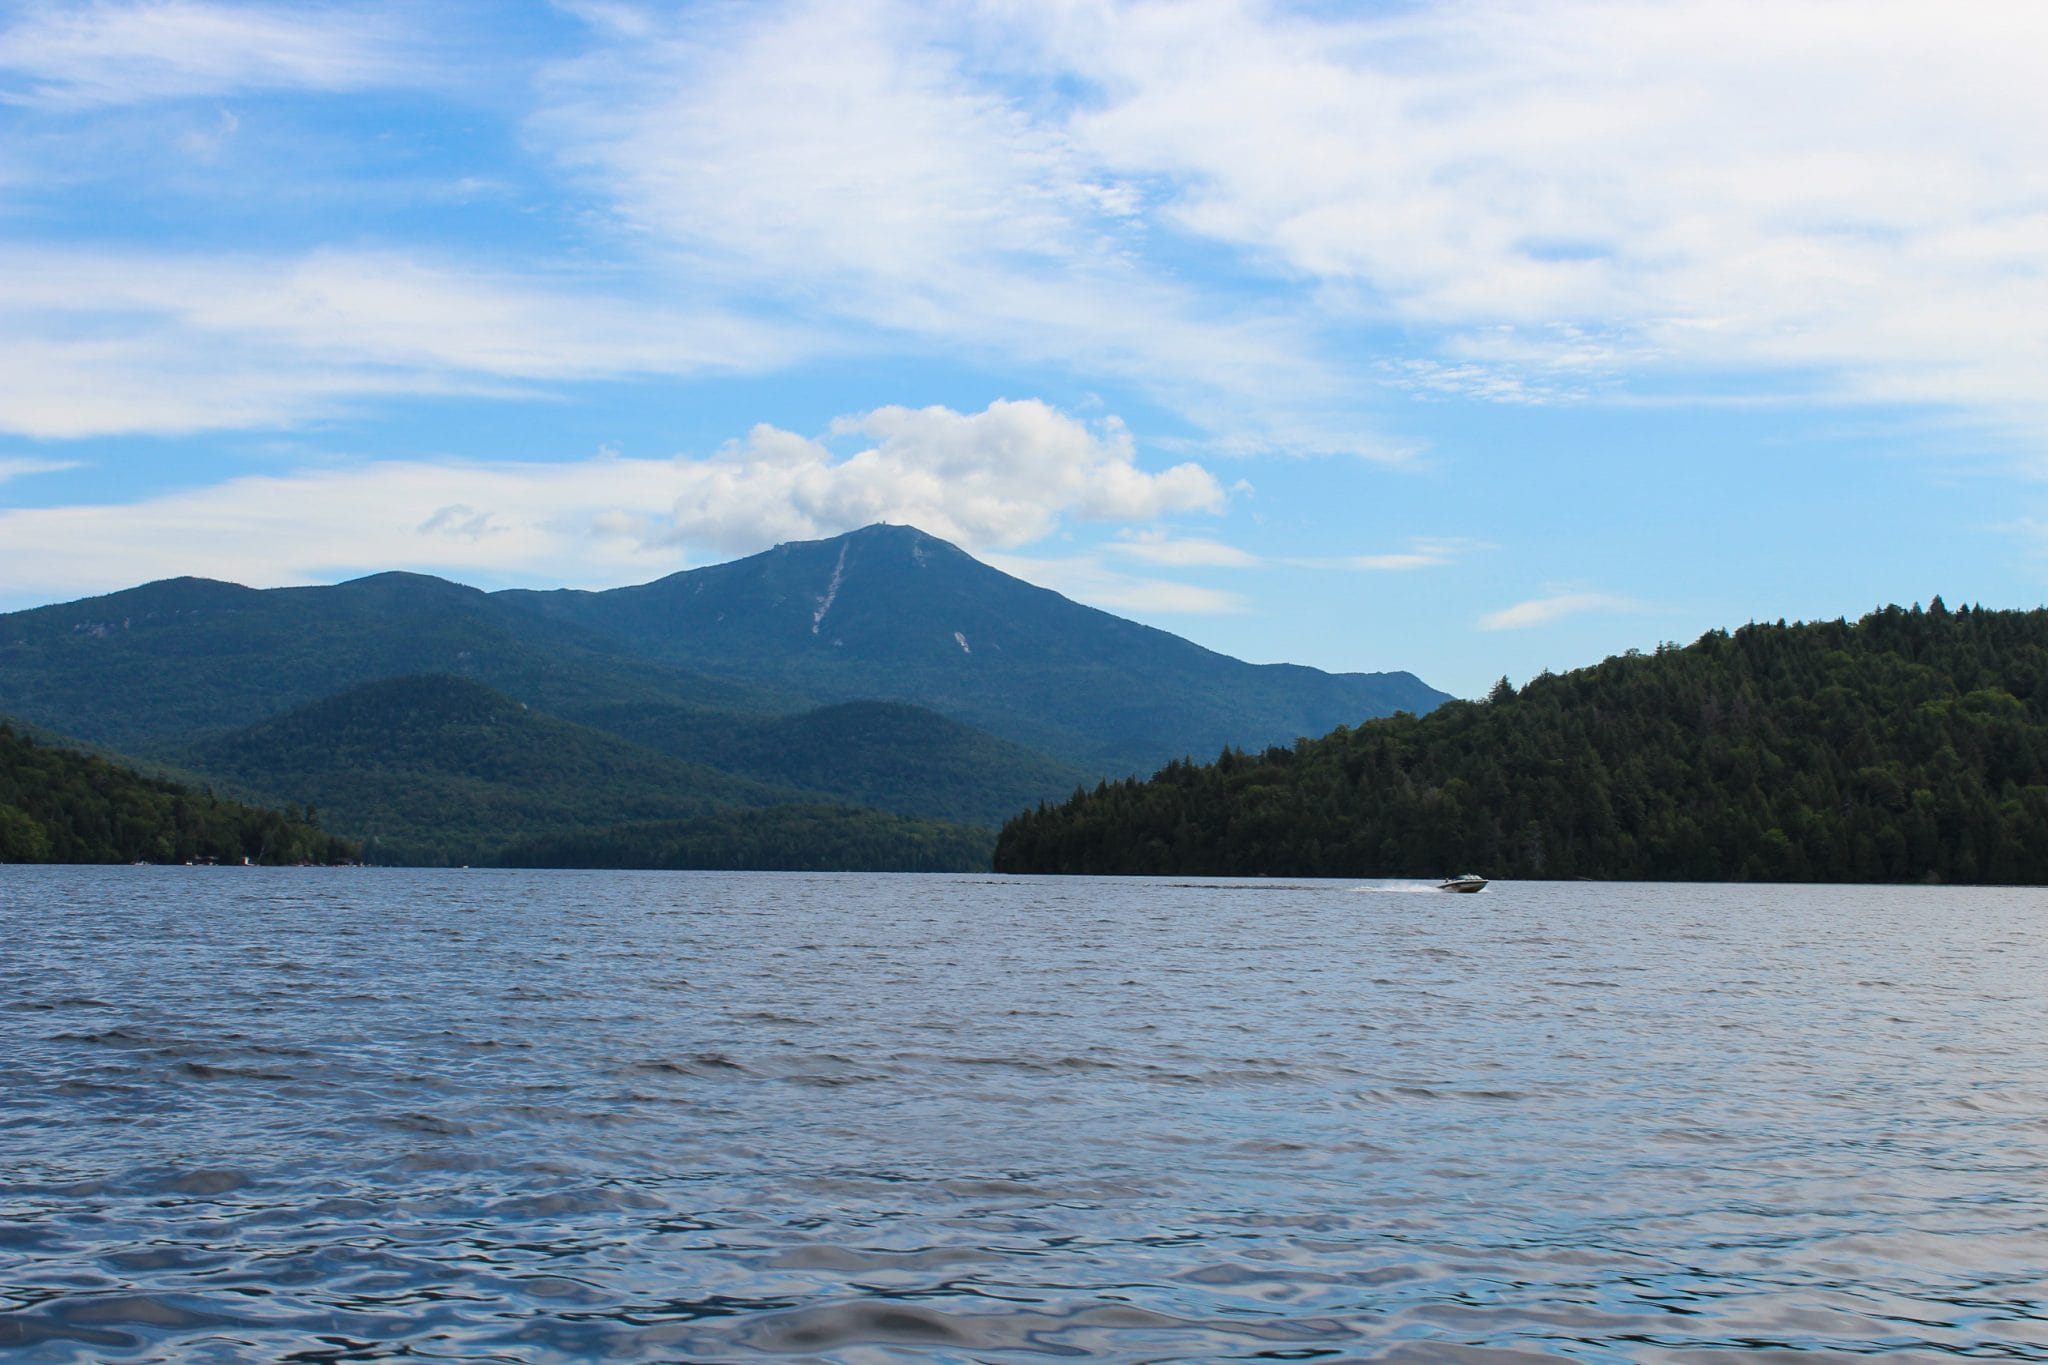 View of Whiteface Mountain from Lake Placid boat tour